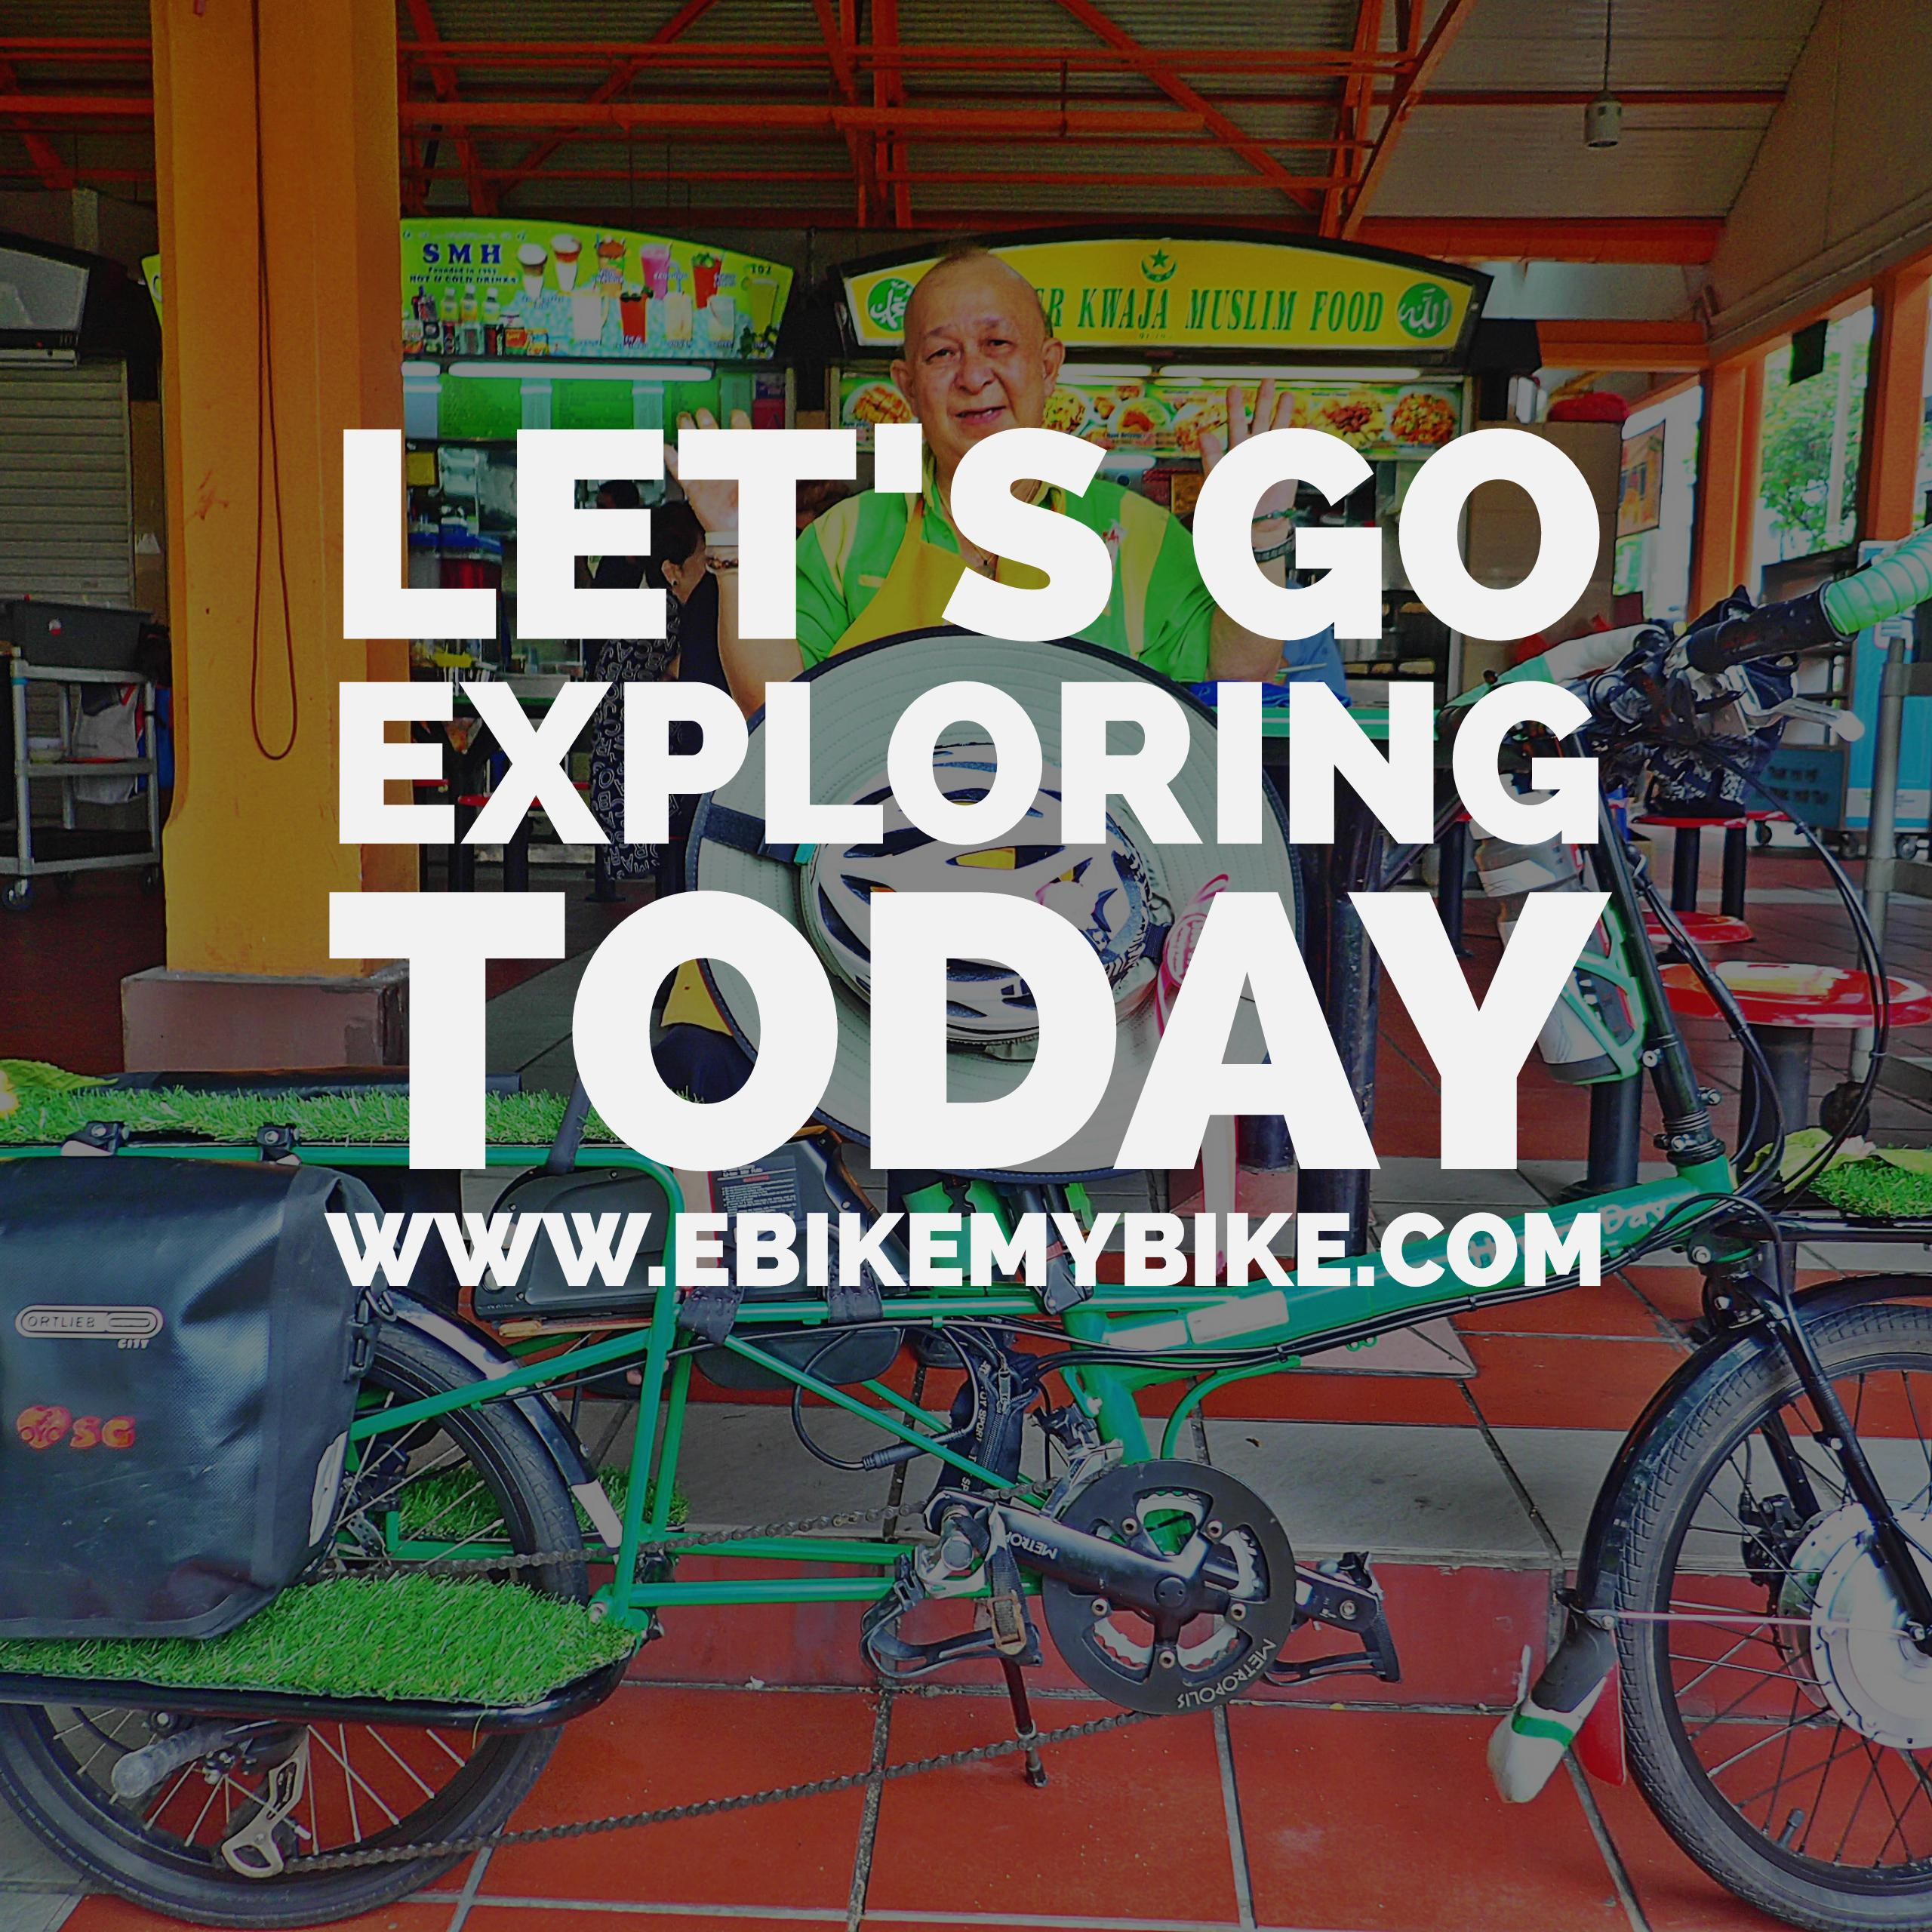 e-bike conversion kit for electric cargo bike